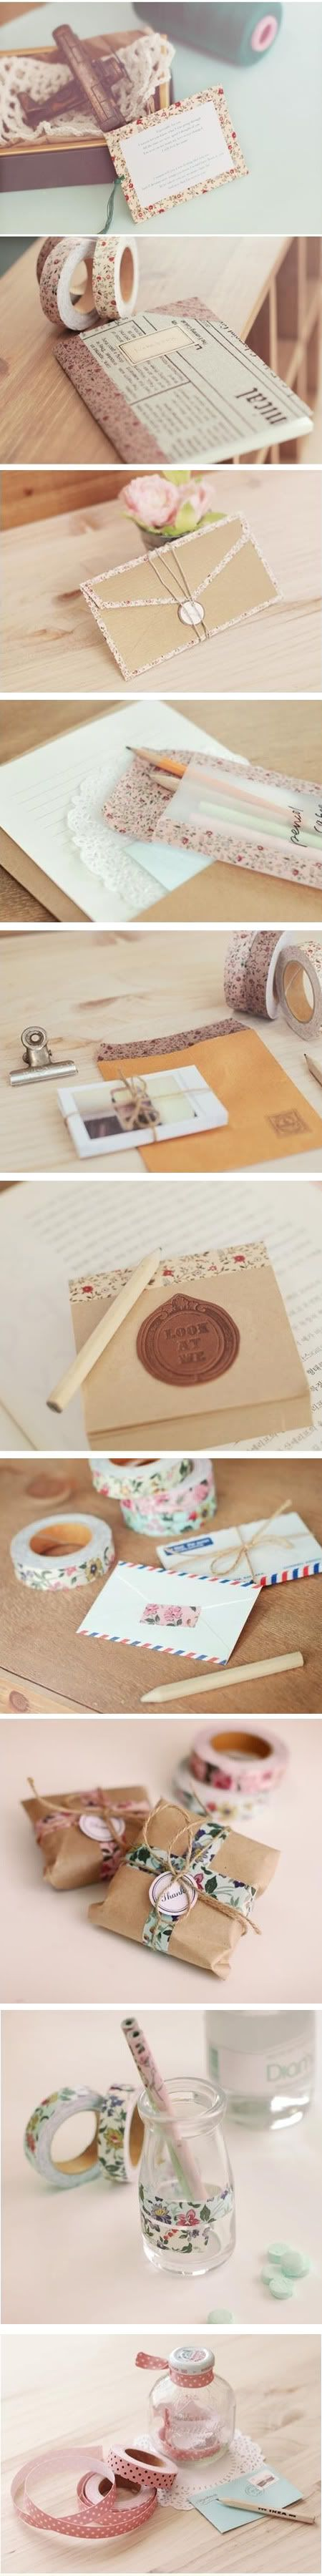 Sorry to be posting so many images in one post, but I just can't help but swoon over all these gorgeous paper goods, Koreans really know how to make sweet, beautiful stationary. And their prices ar...